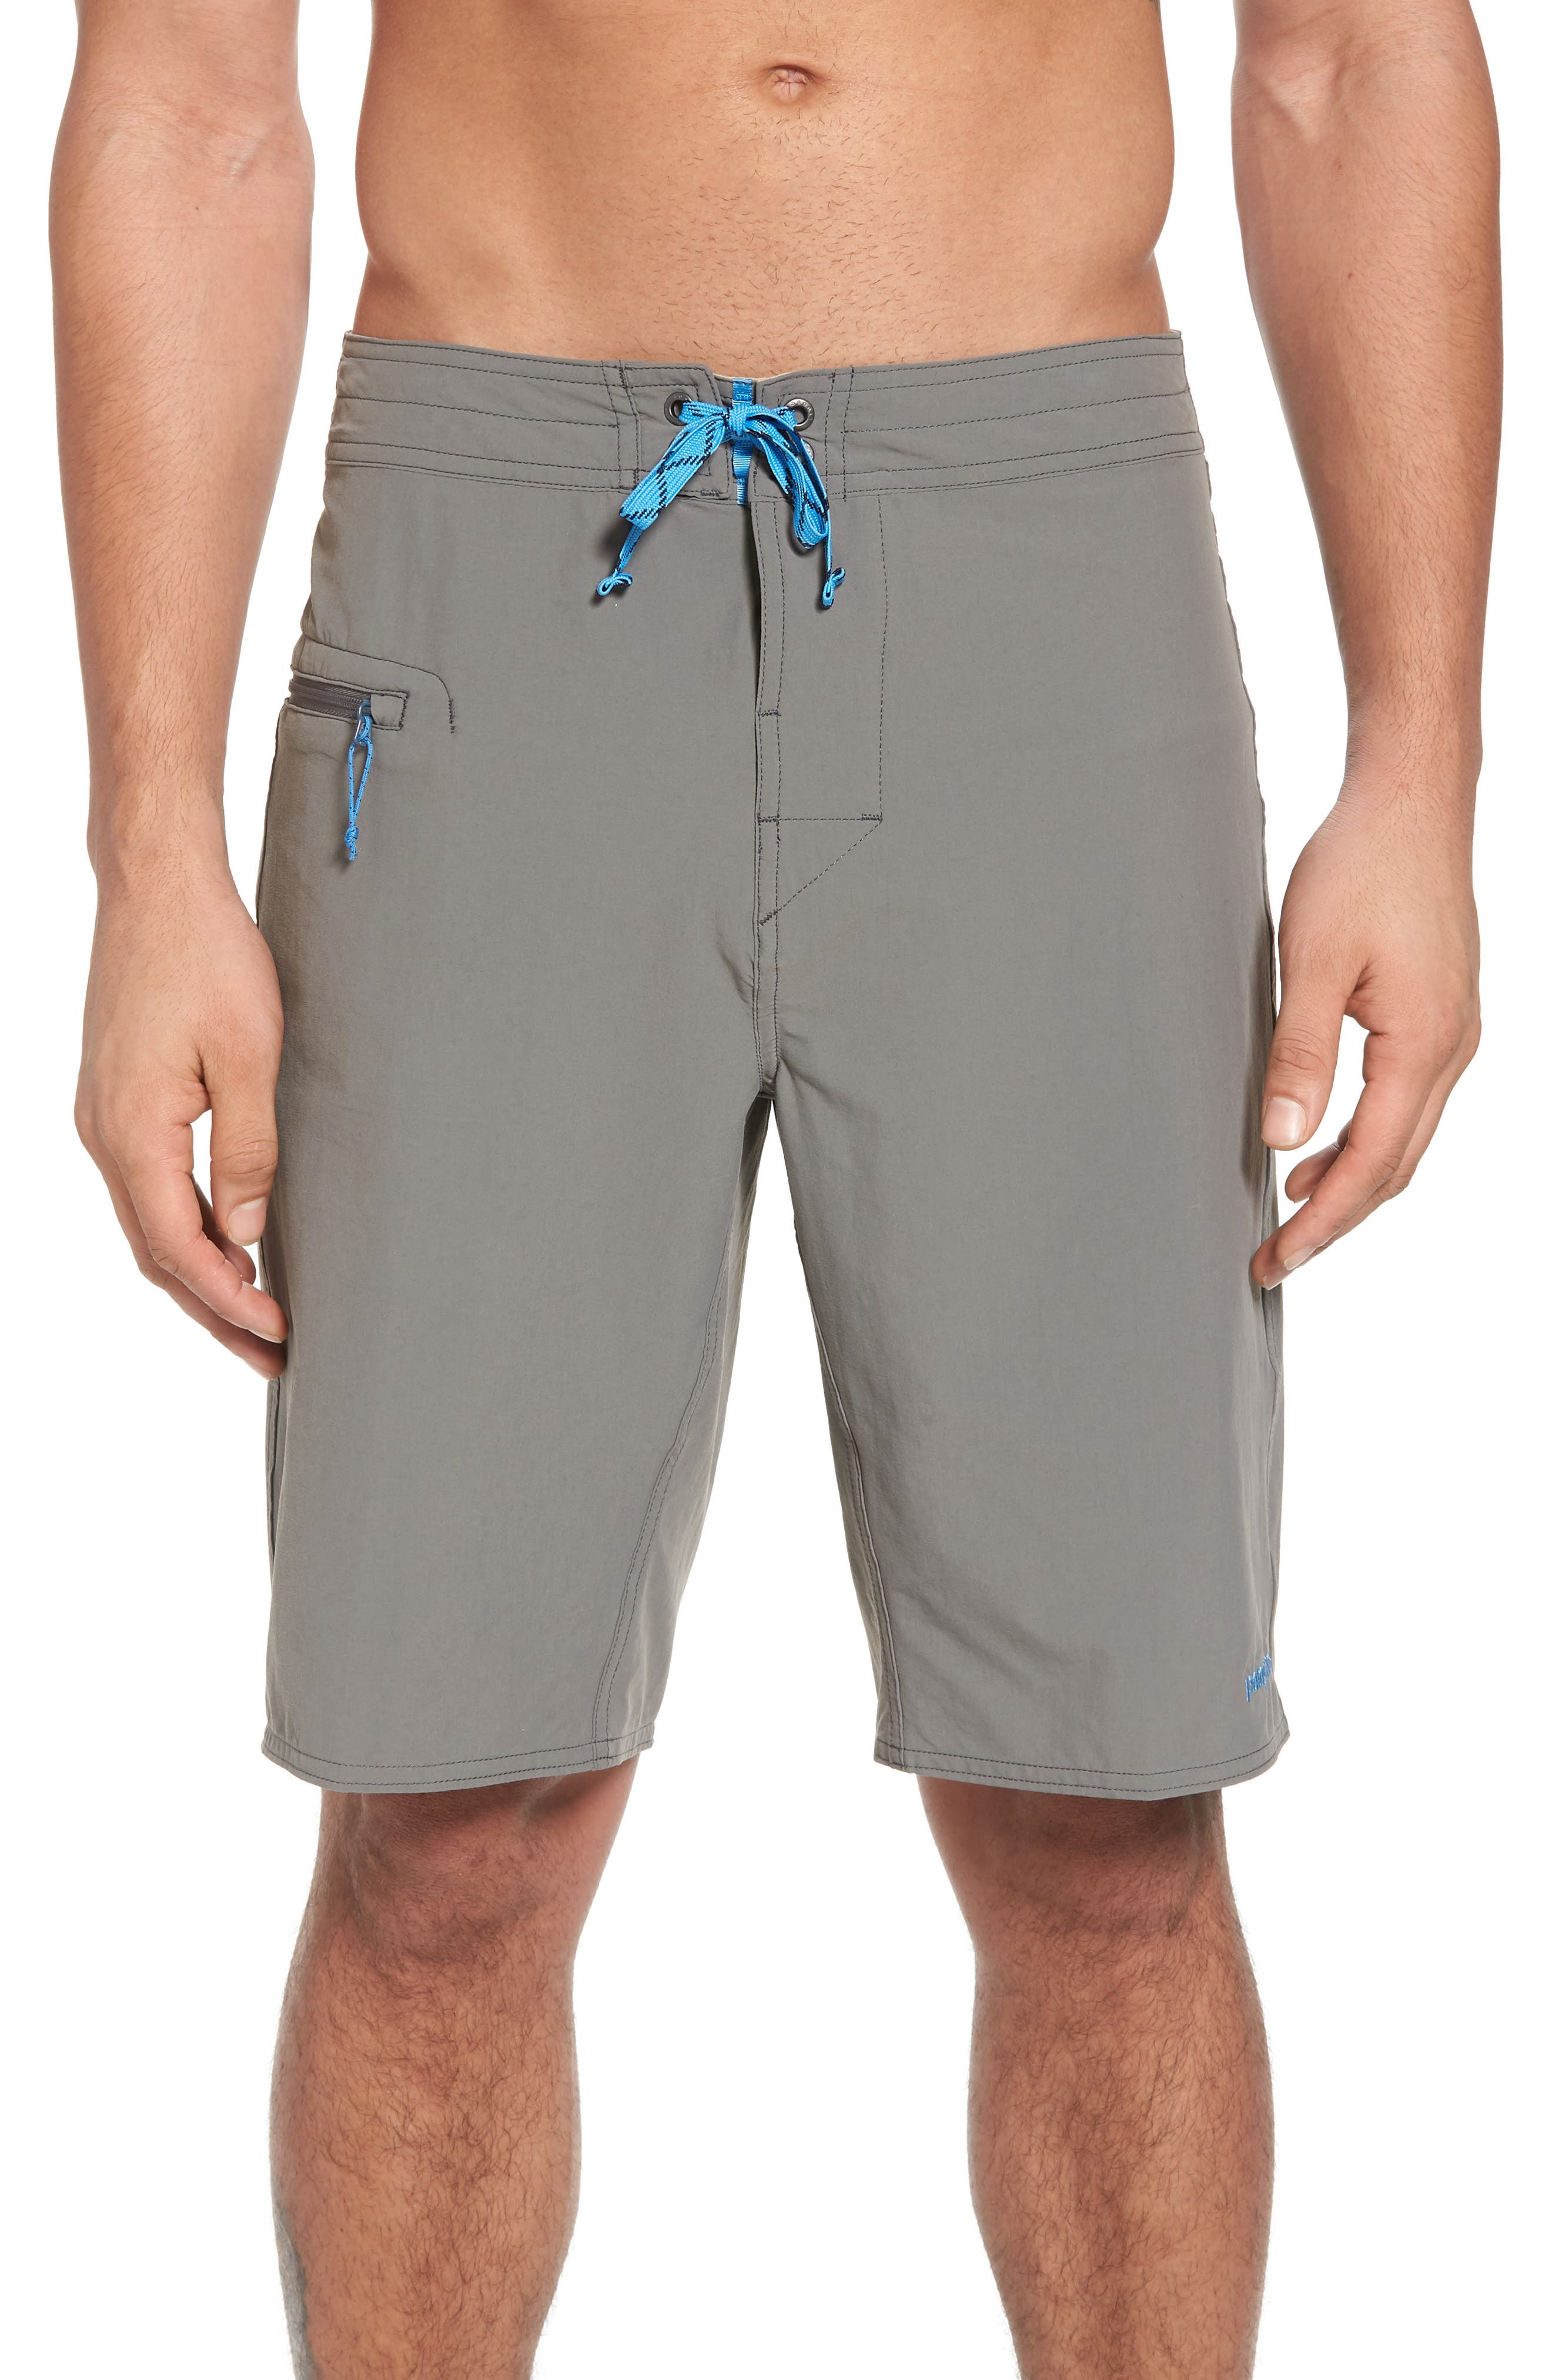 Wavefarer Board Shorts,                             Main thumbnail 1, color,                             021